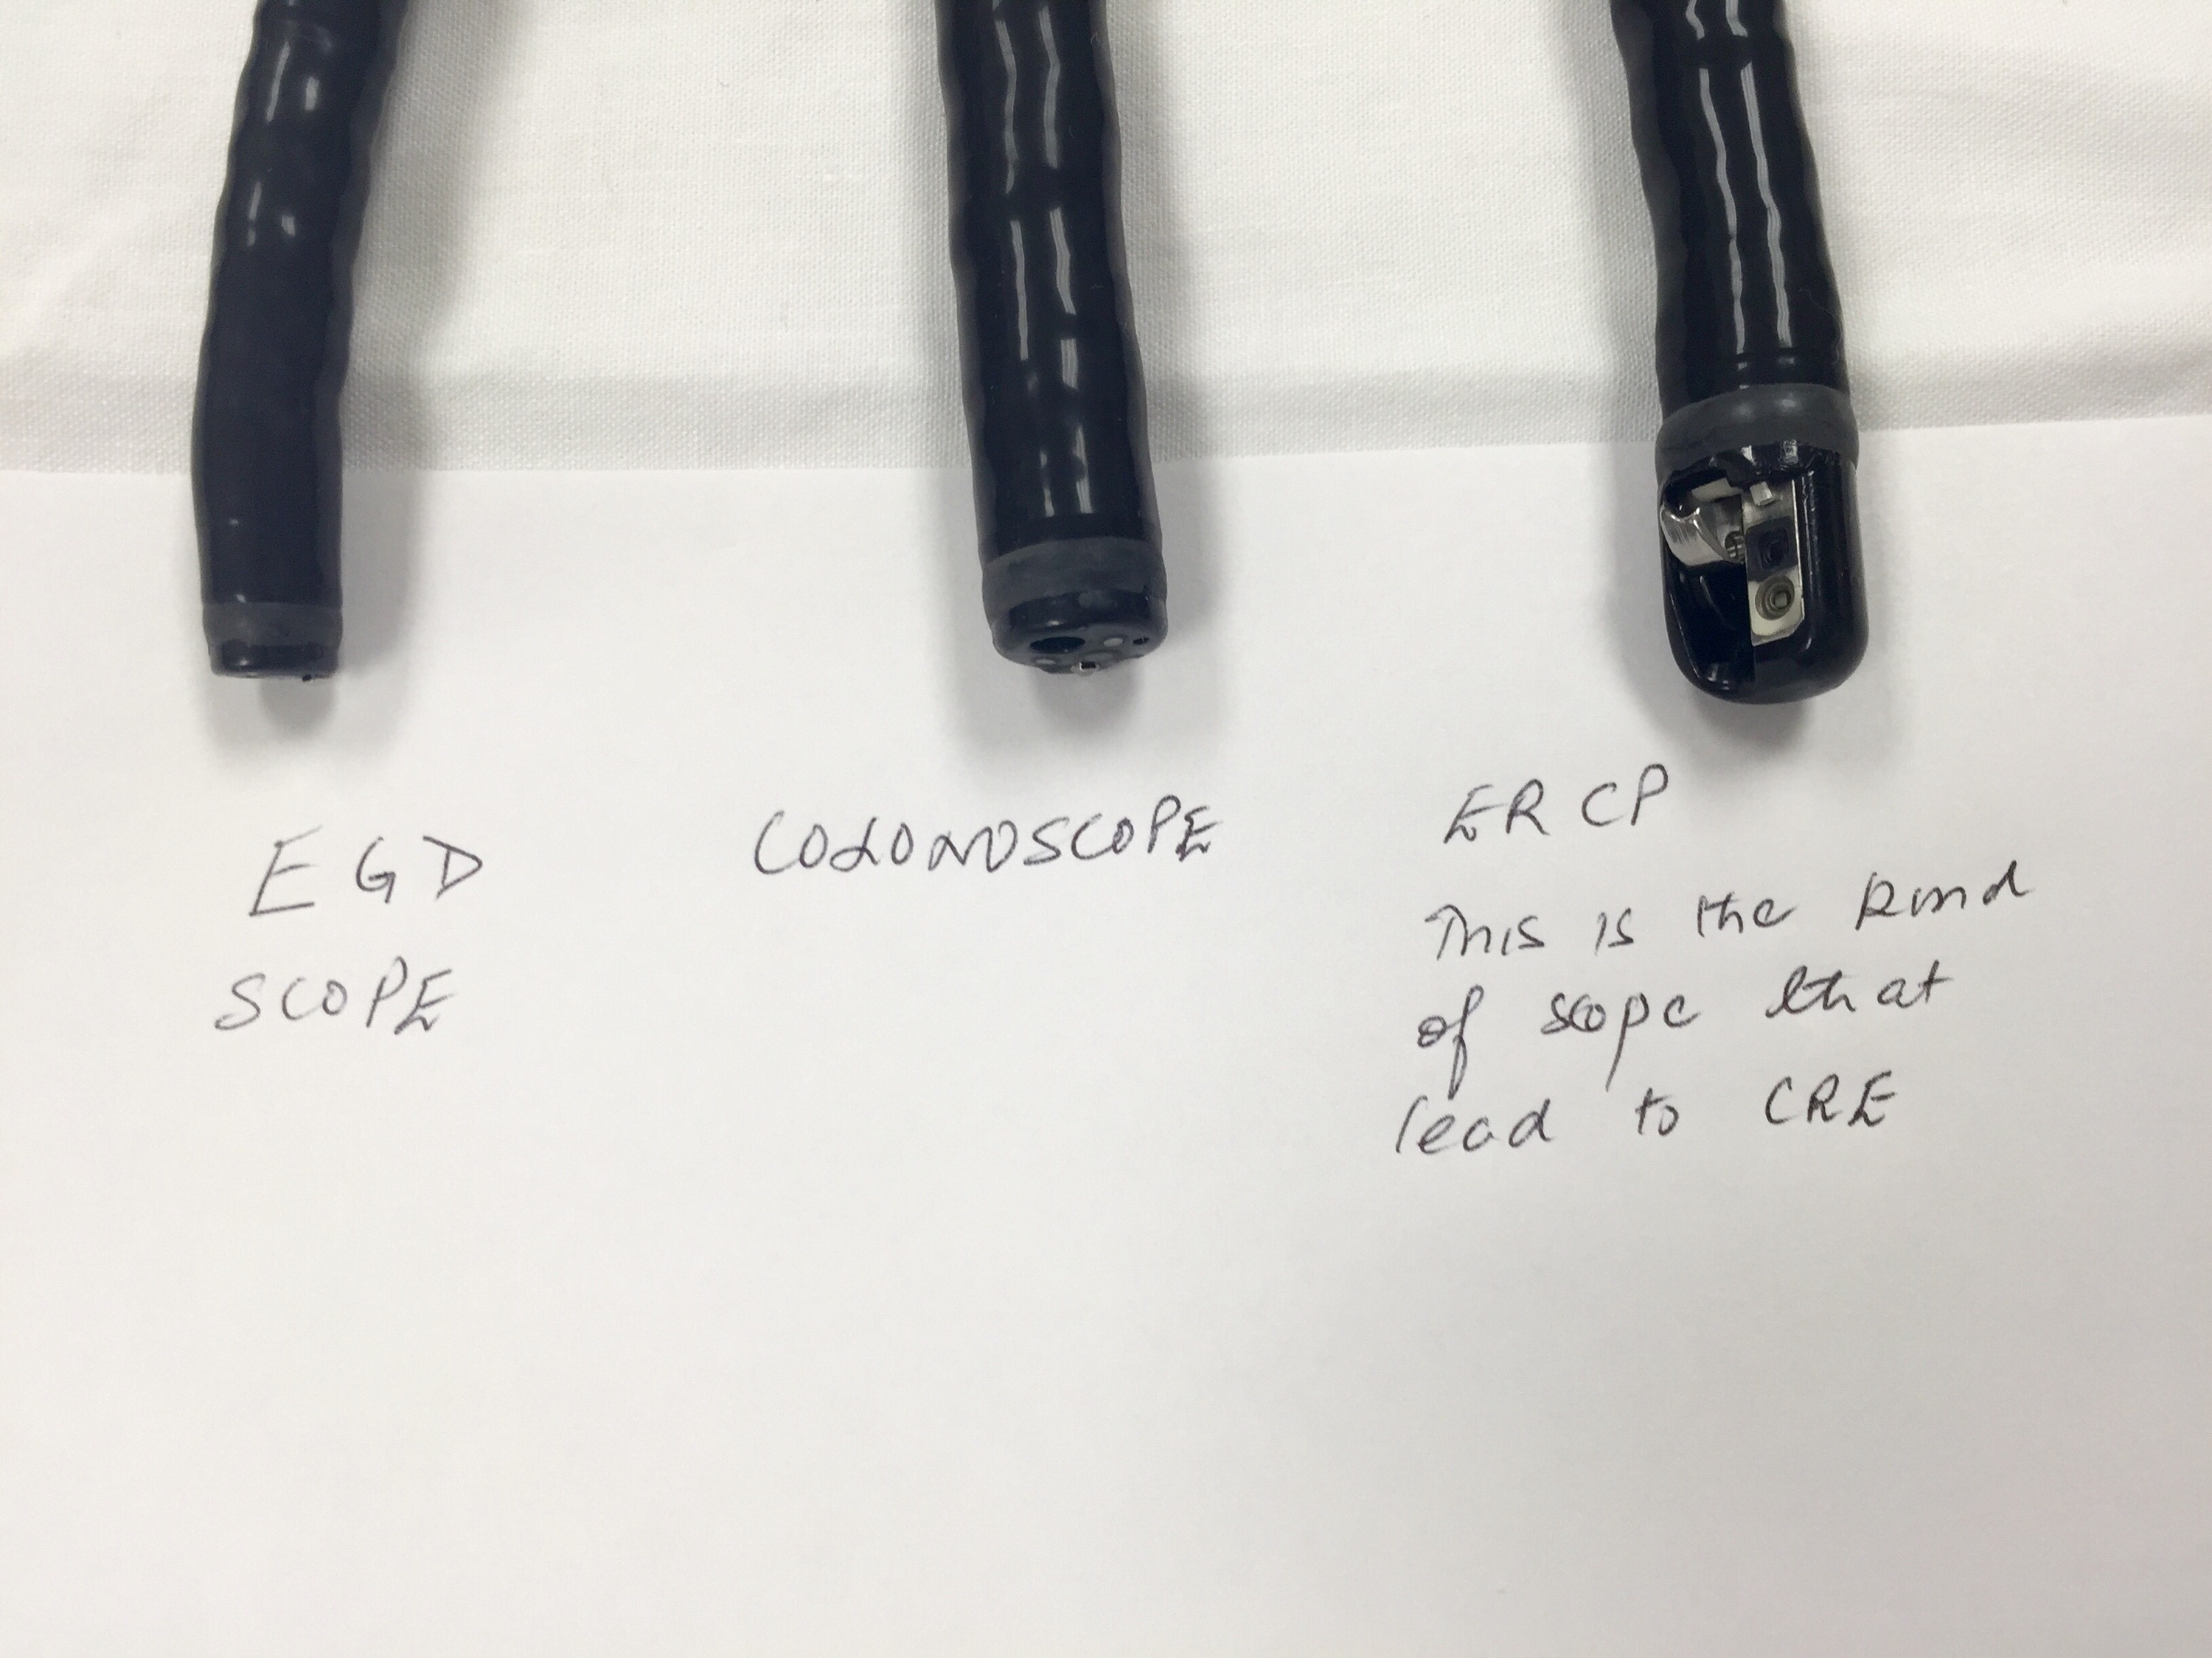 Only Specialized Ercp Leads To Cre Infection Dr Adi Malhotra